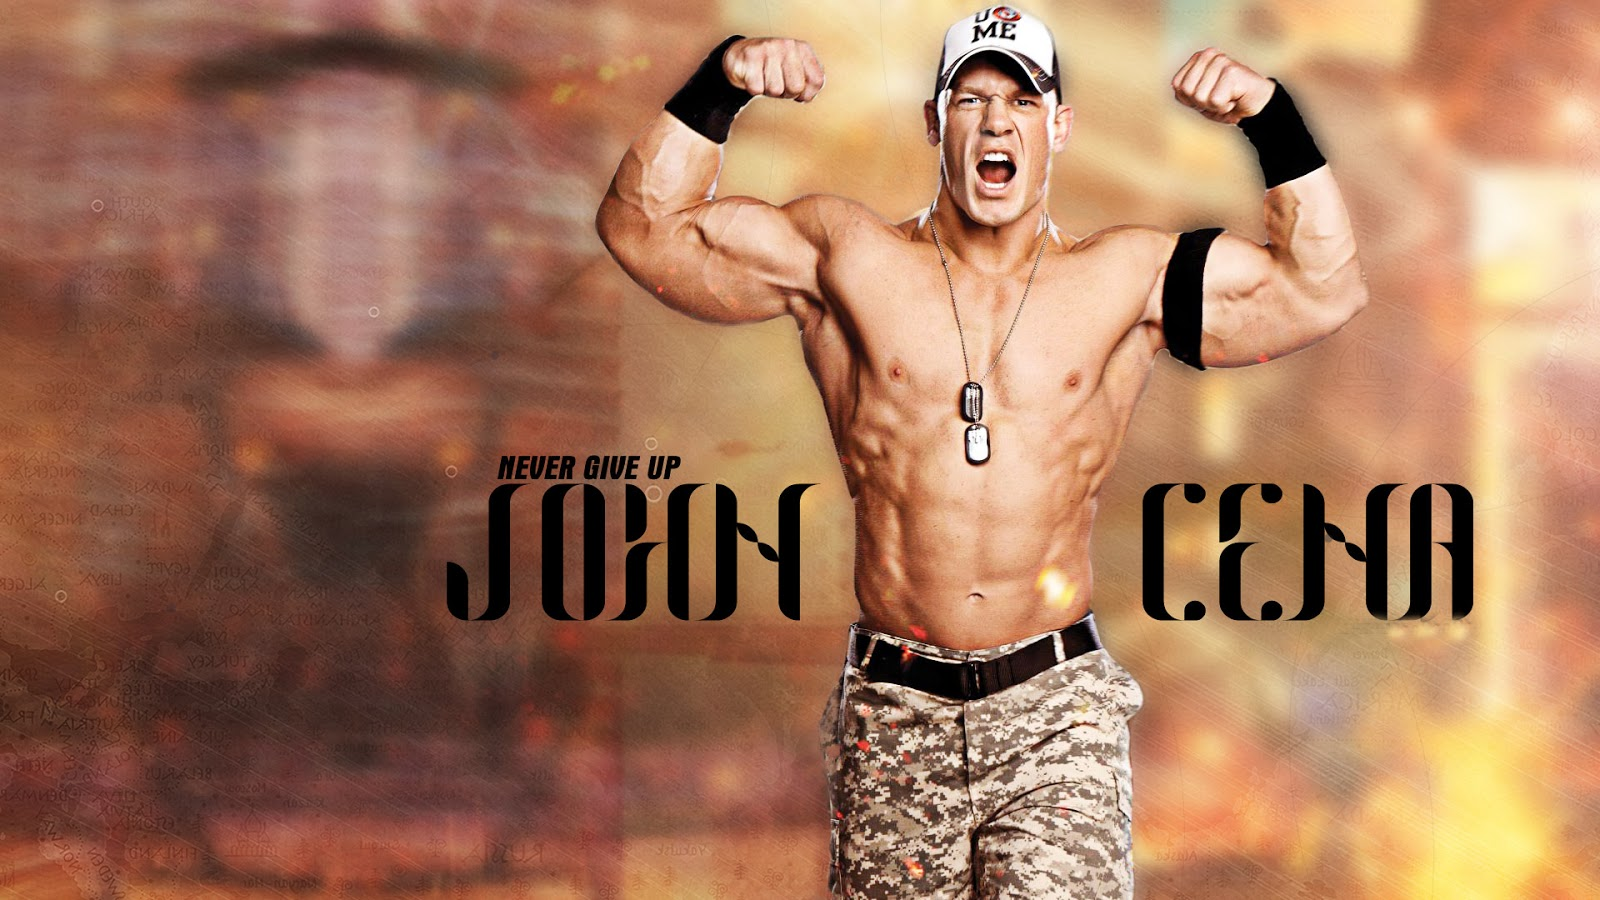 John Cena Latest Hd Wallpapers 2013 World HD Wallpapers 1600x900